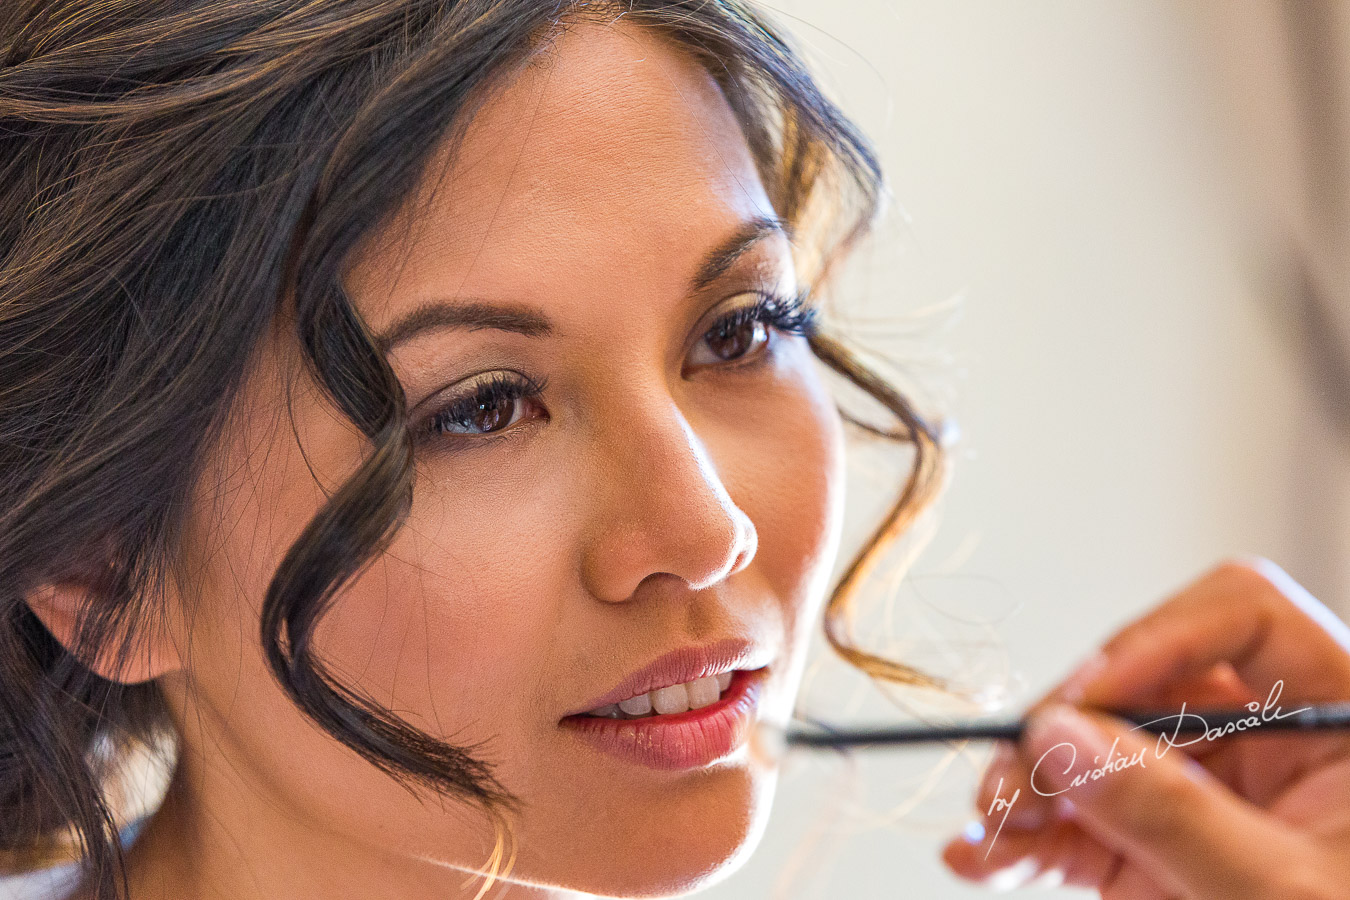 The beautiful bride Marian while make up captured at her wedding in Ayia Napa, Cyprus by Cristian Dascalu.